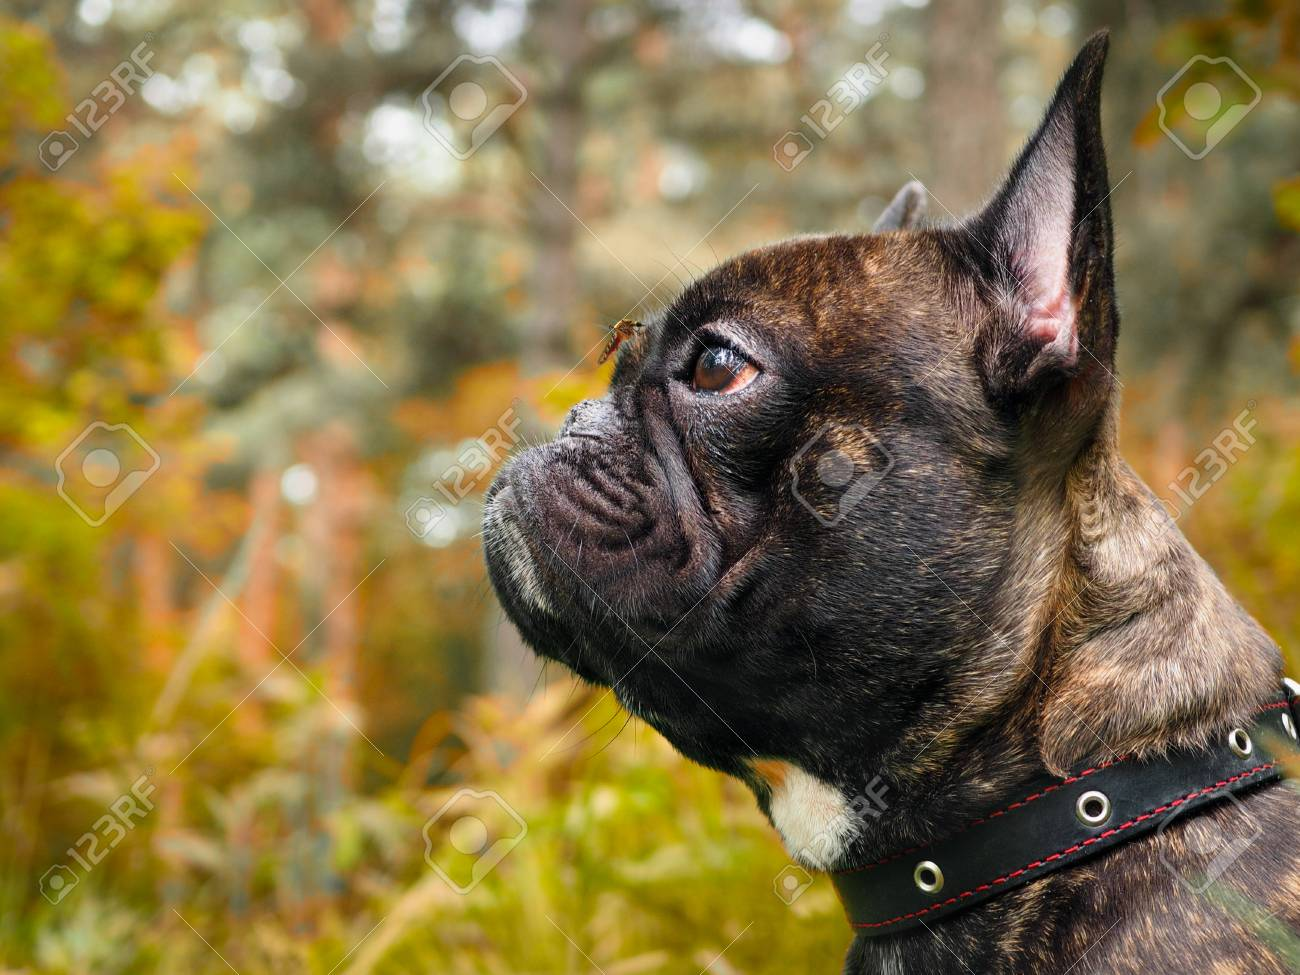 dog with a mosquito on your nose. The mosquito drinks blood. Nature, forest - 80230475